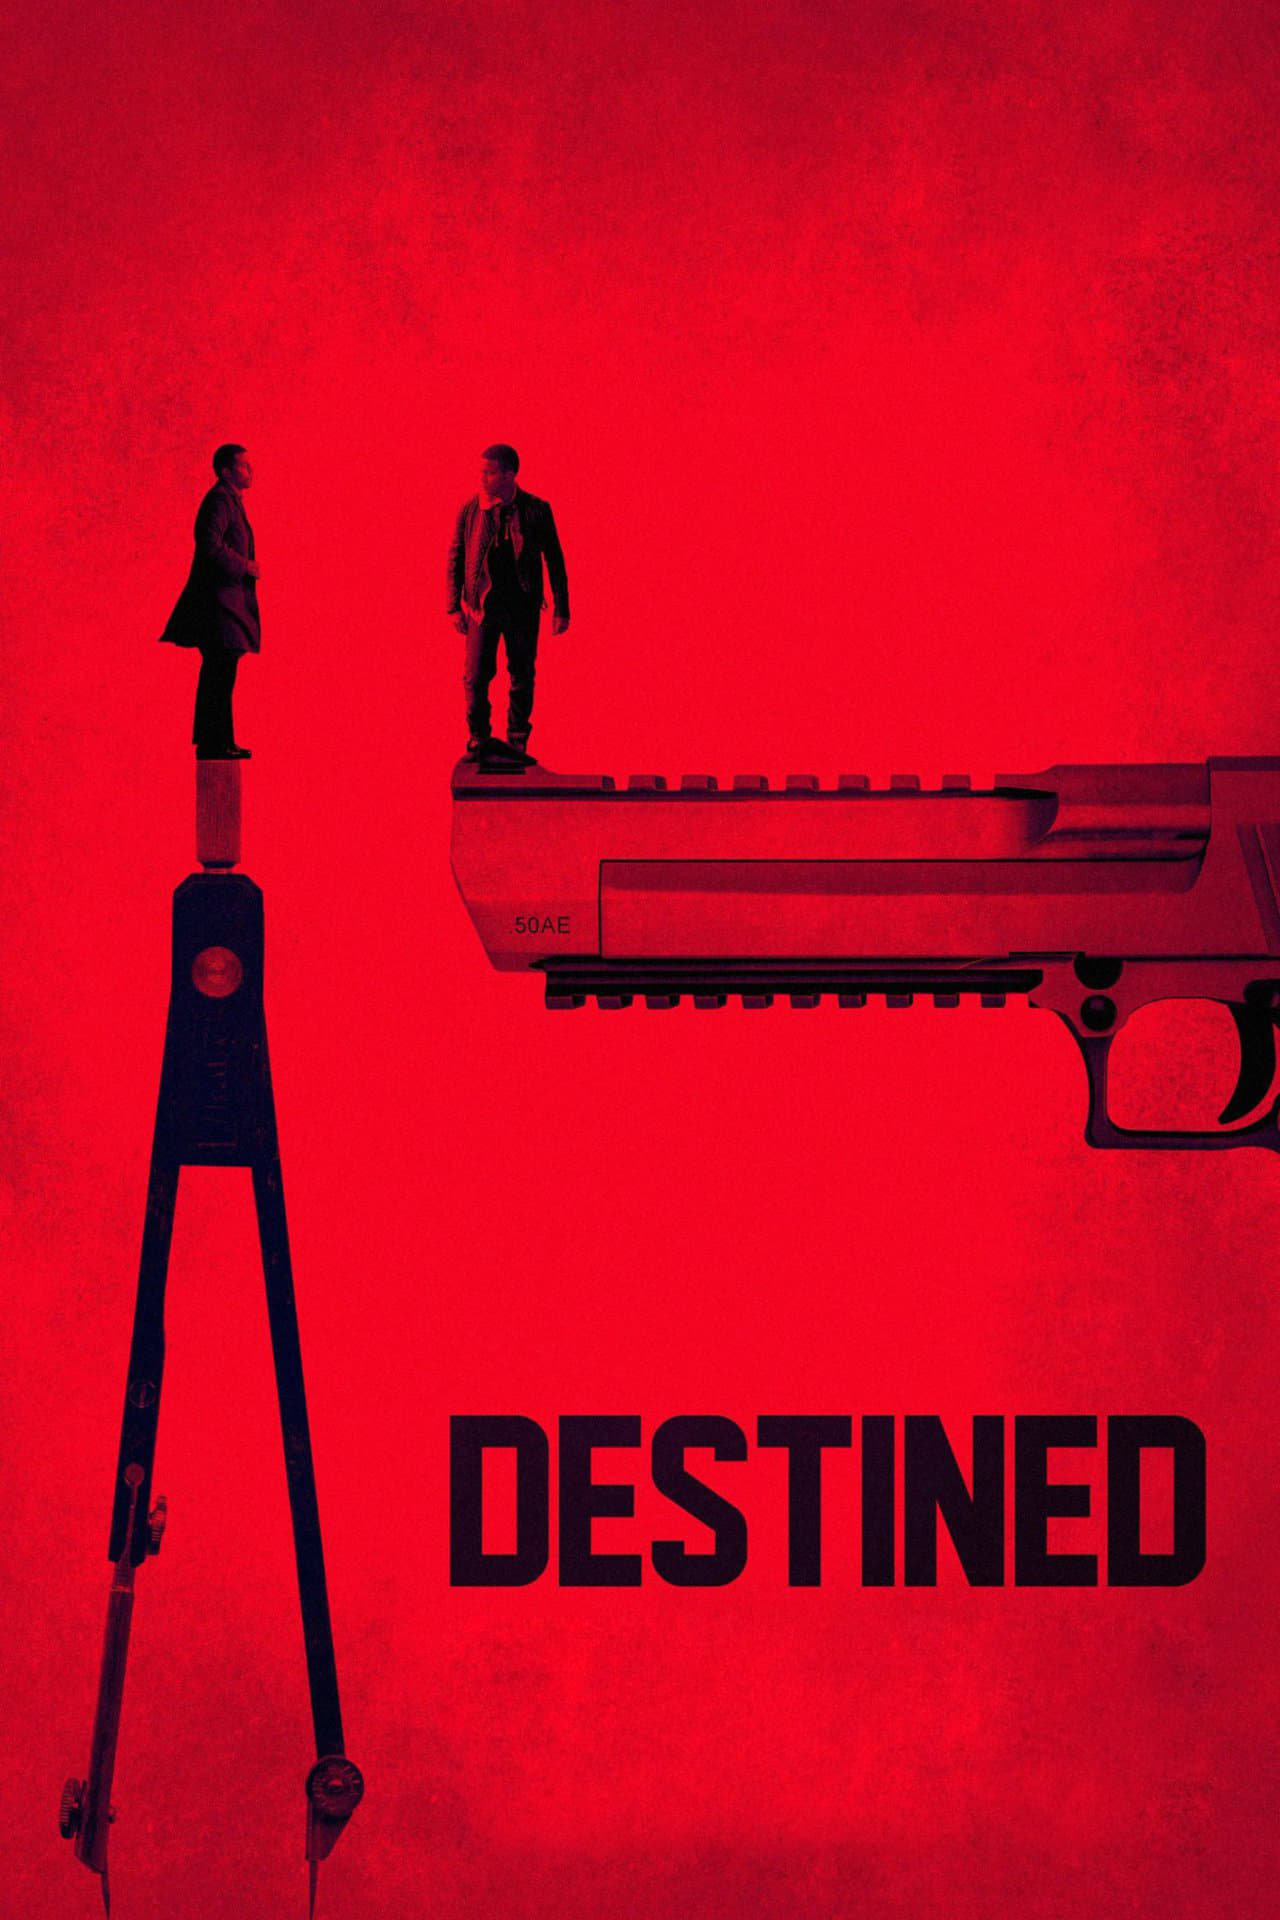 image for Destined